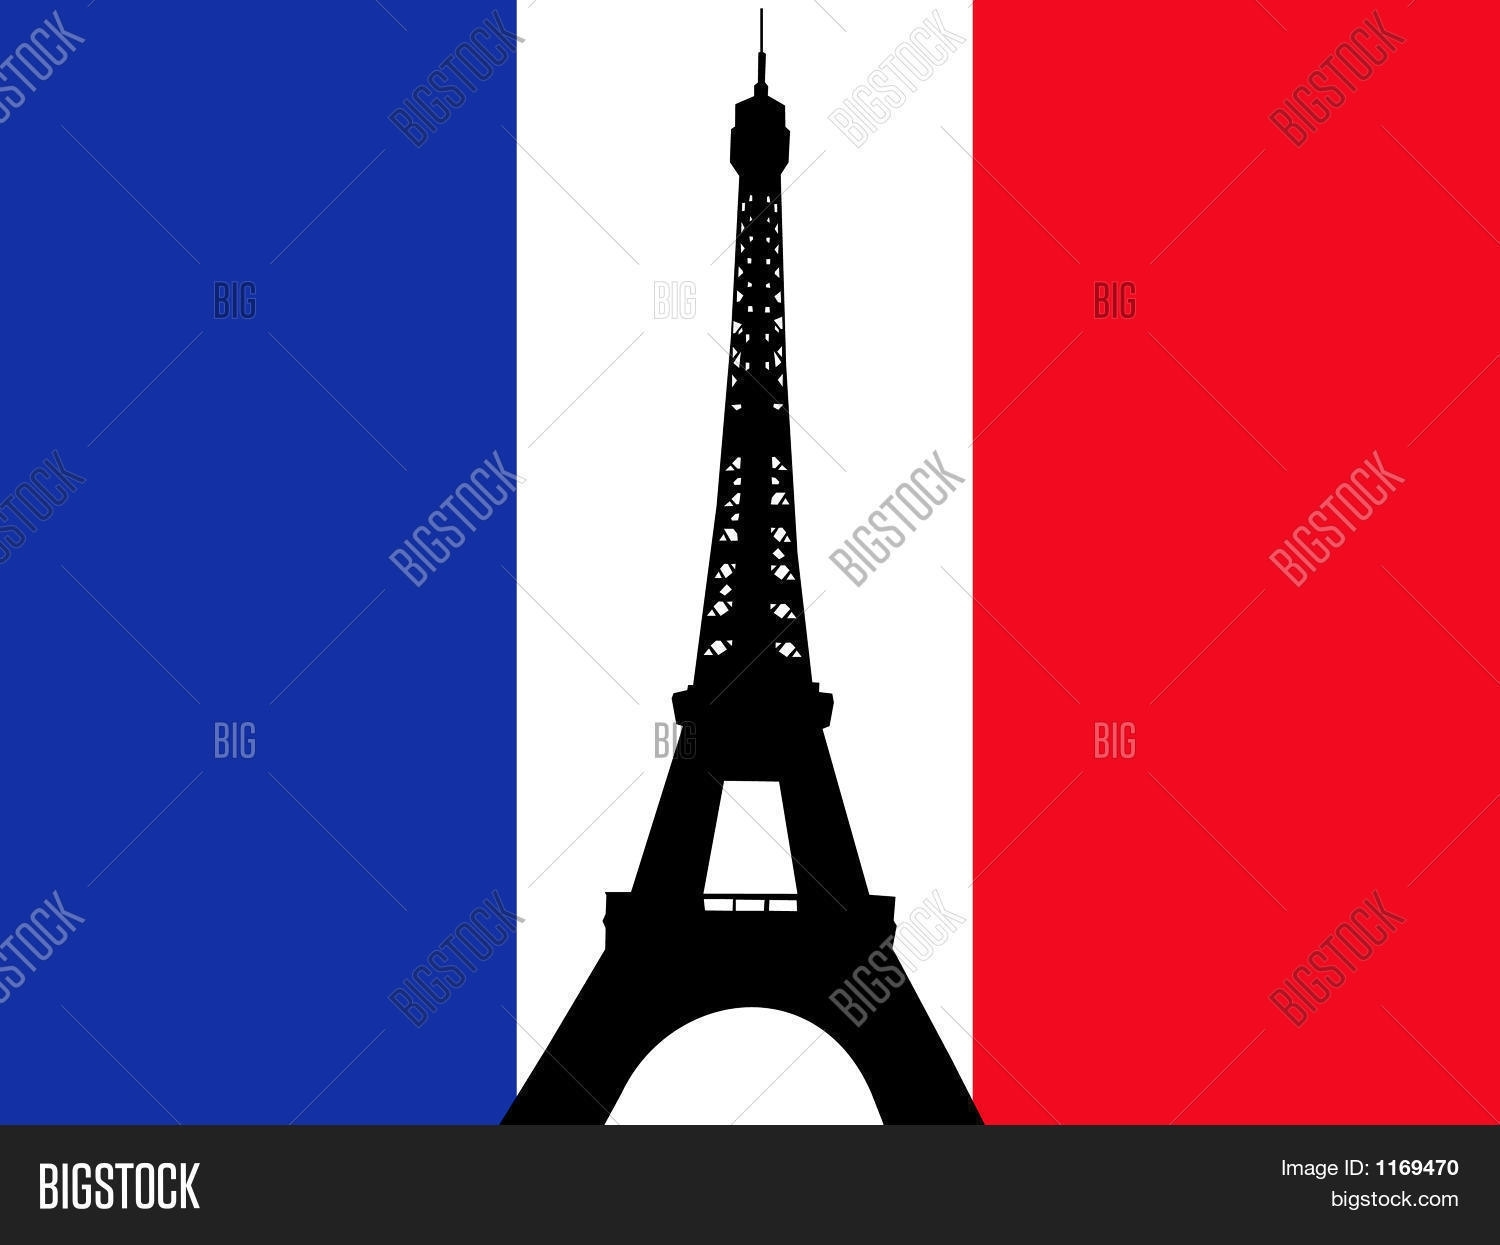 eiffel tower french flag image & photo | bigstock